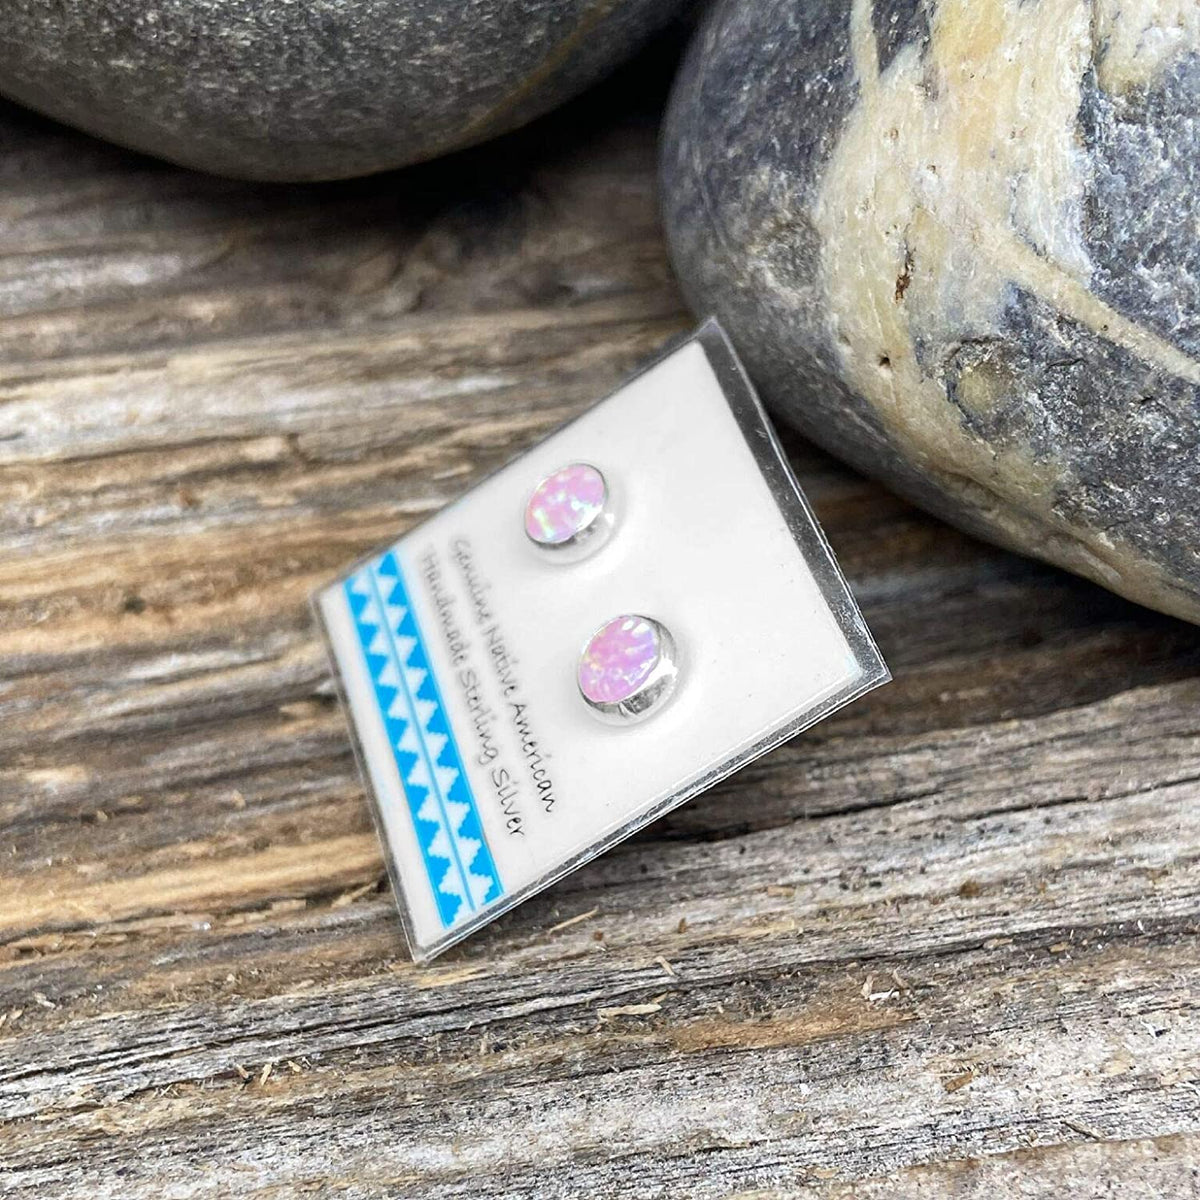 6mm Pink Desert Opal Stud Earrings, 925 Sterling Silver, Native American USA Handmade, Nickle Free, Round